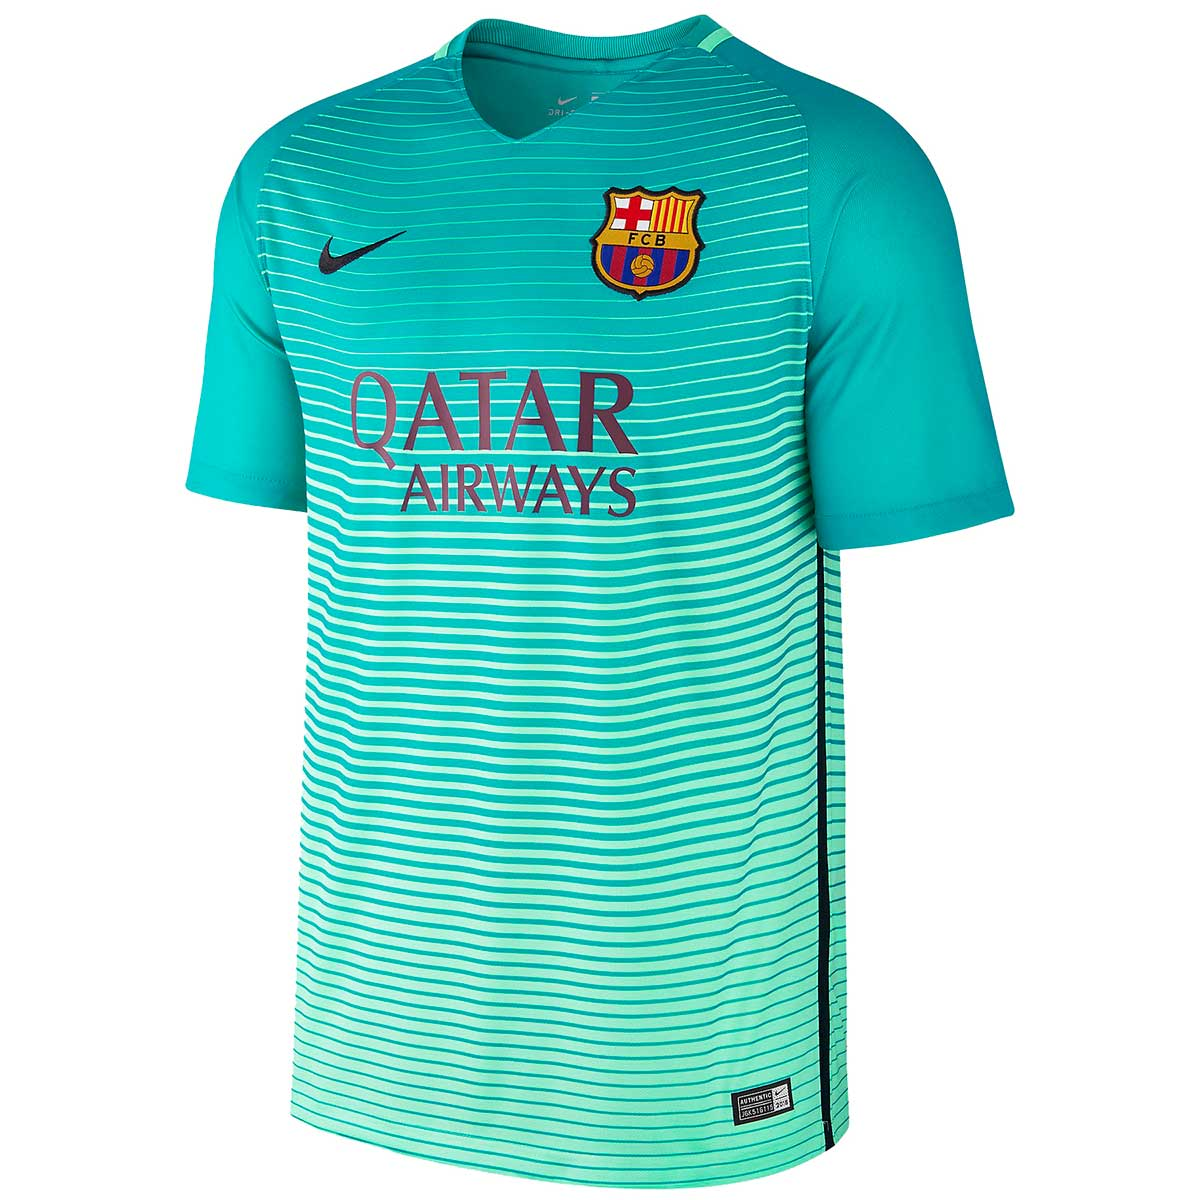 separation shoes dfaa6 1b1c6 Nike FC Barcelona Jersey 2016/17 (Green)